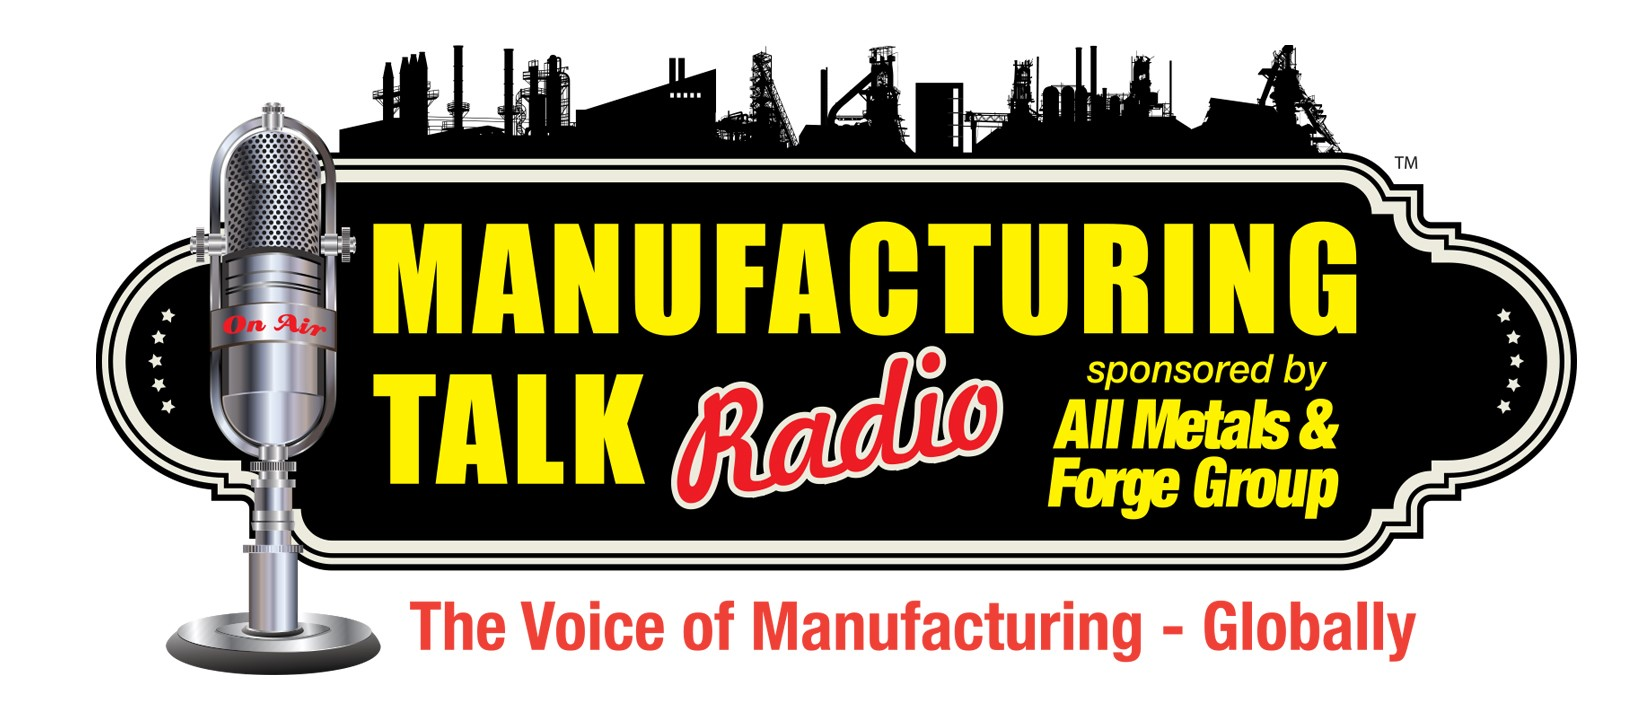 Manufacturing Talk Radio Wraps up for 2019 Highlighting Manufacturing and the Economy